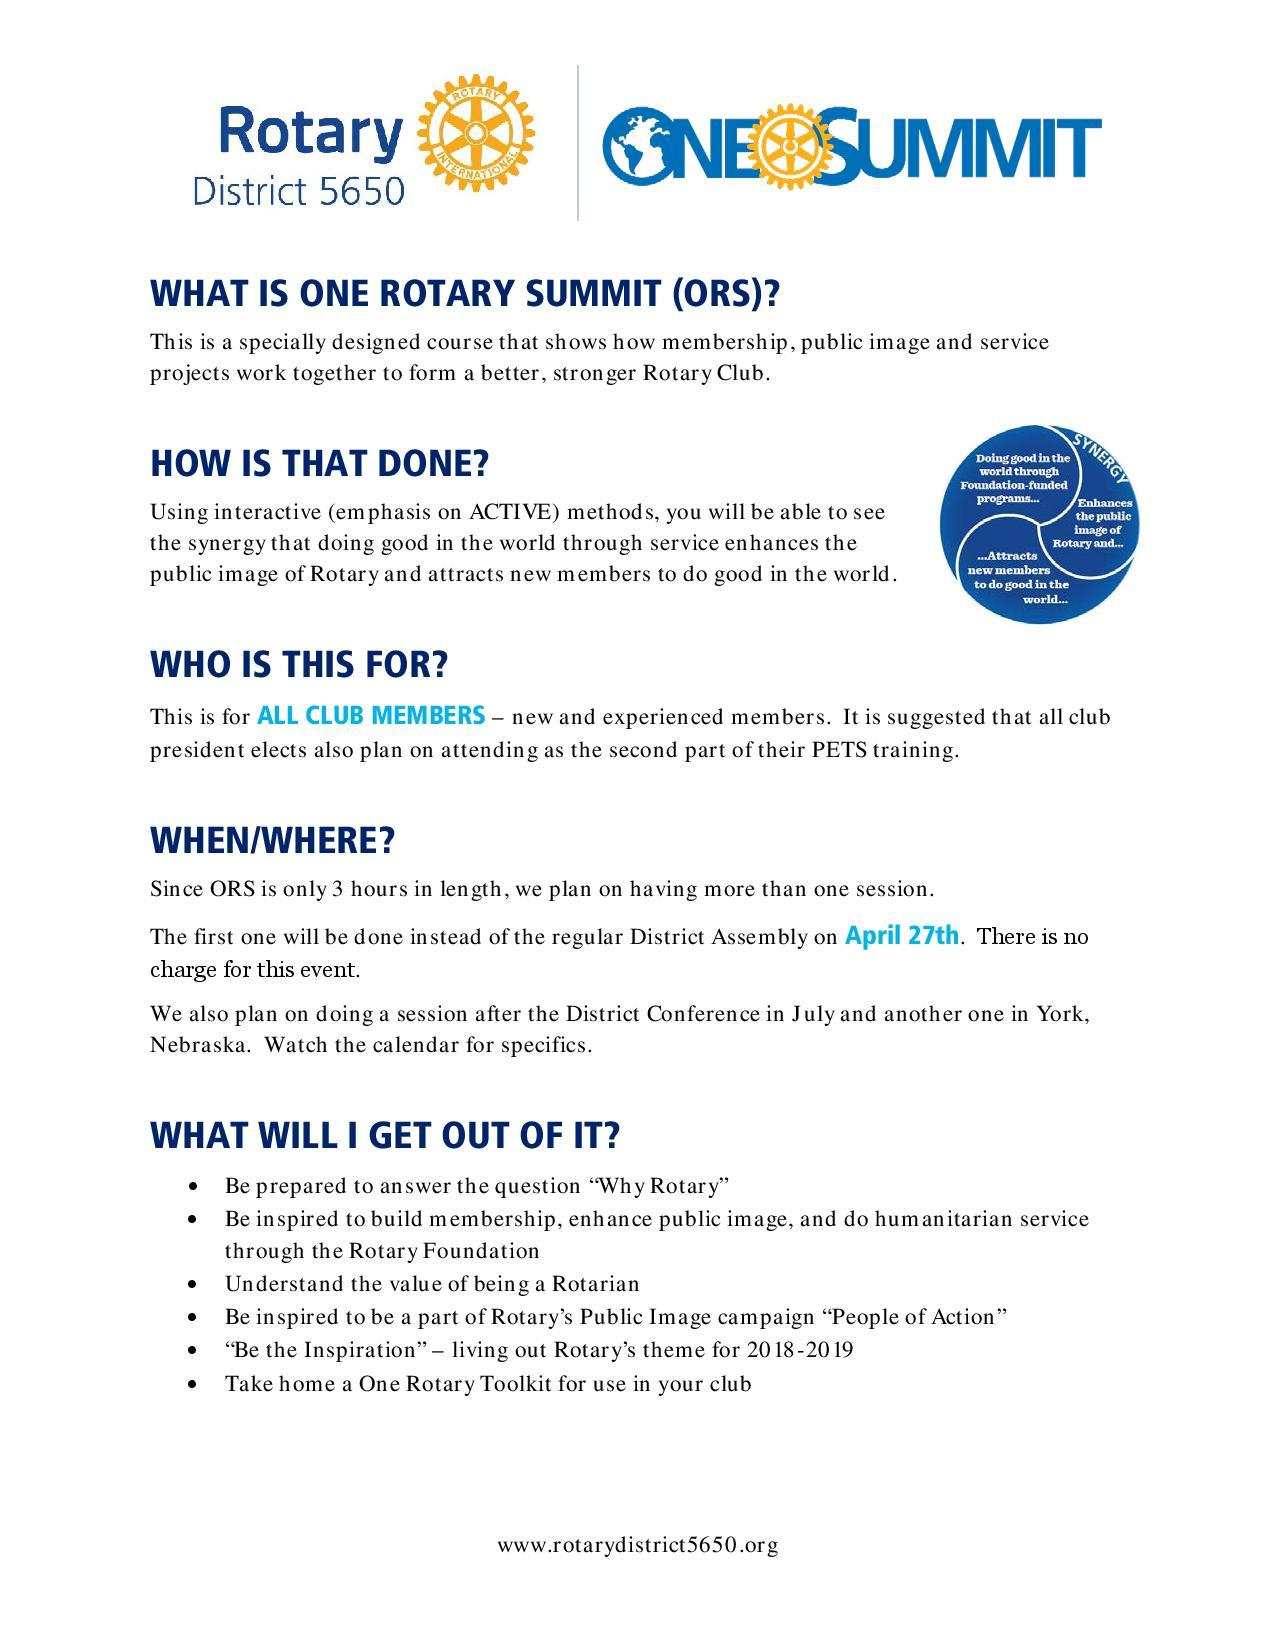 sign up for one rotary summit